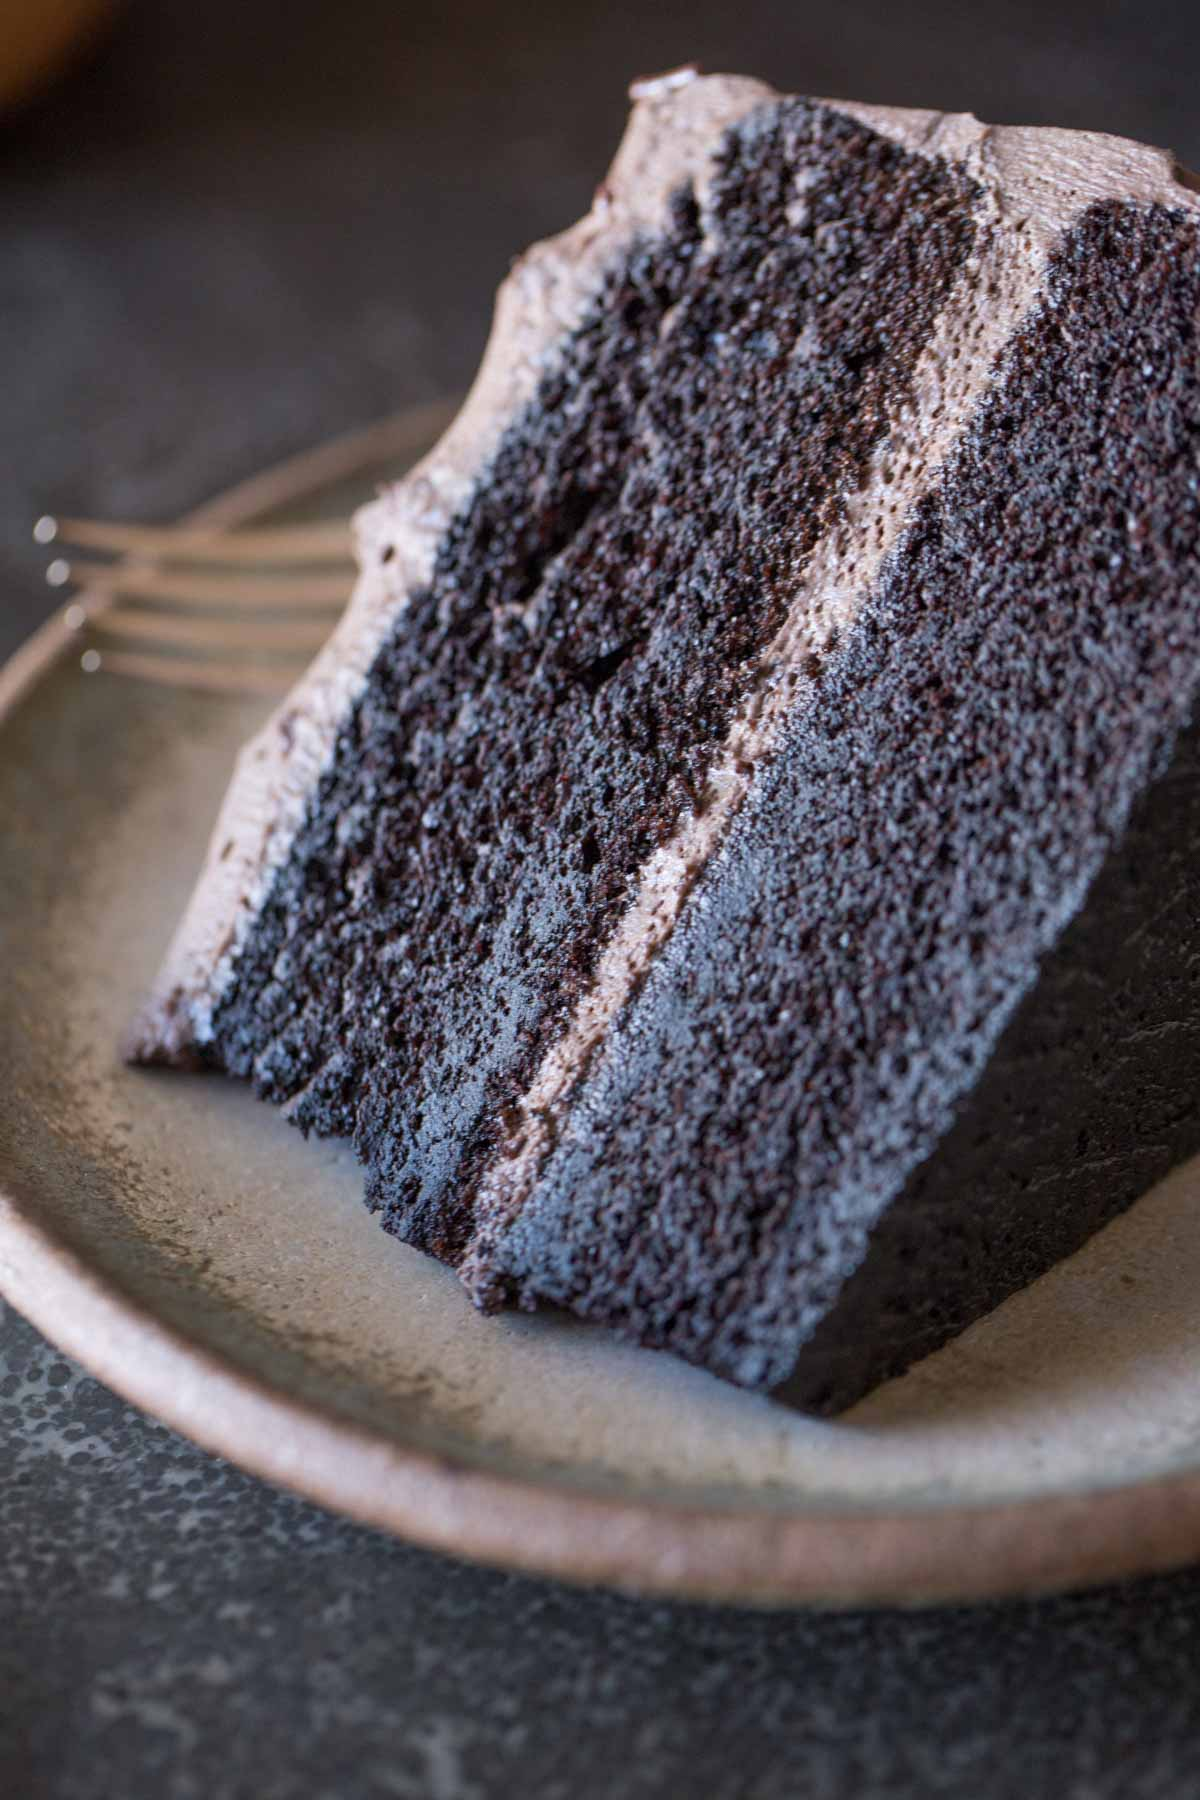 A slice of Dark Chocolate Cake With Whipped Cream Frosting on a plate with a fork.